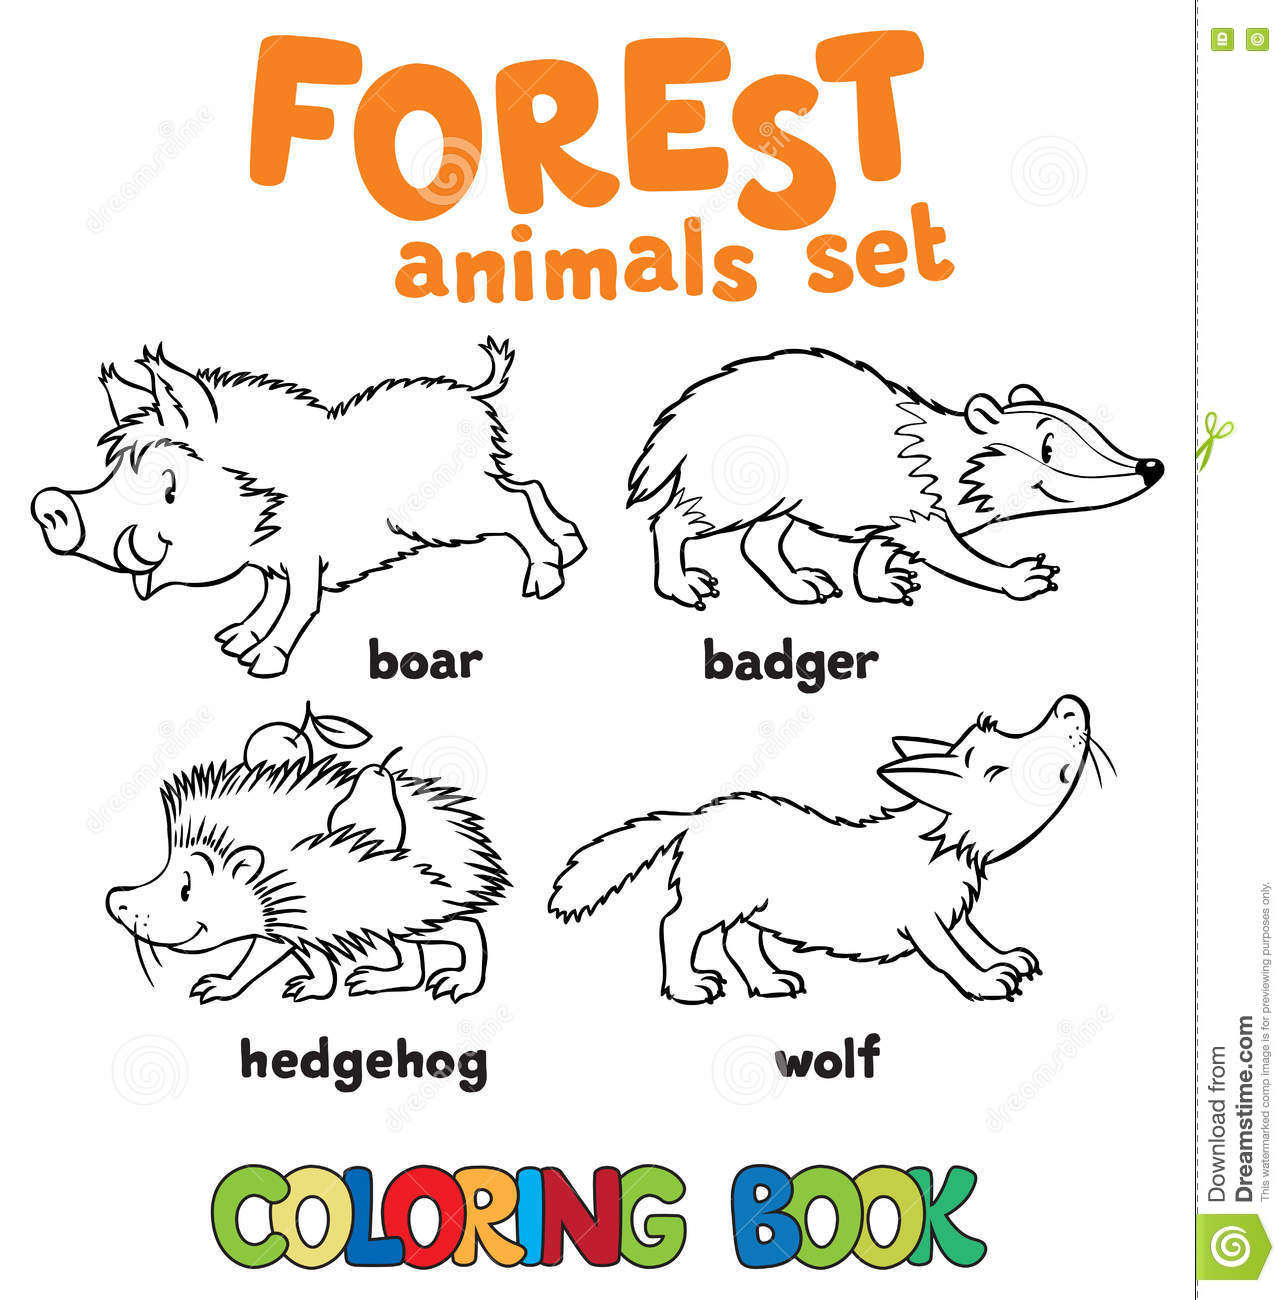 forest animals coloring book - Etame.mibawa.co